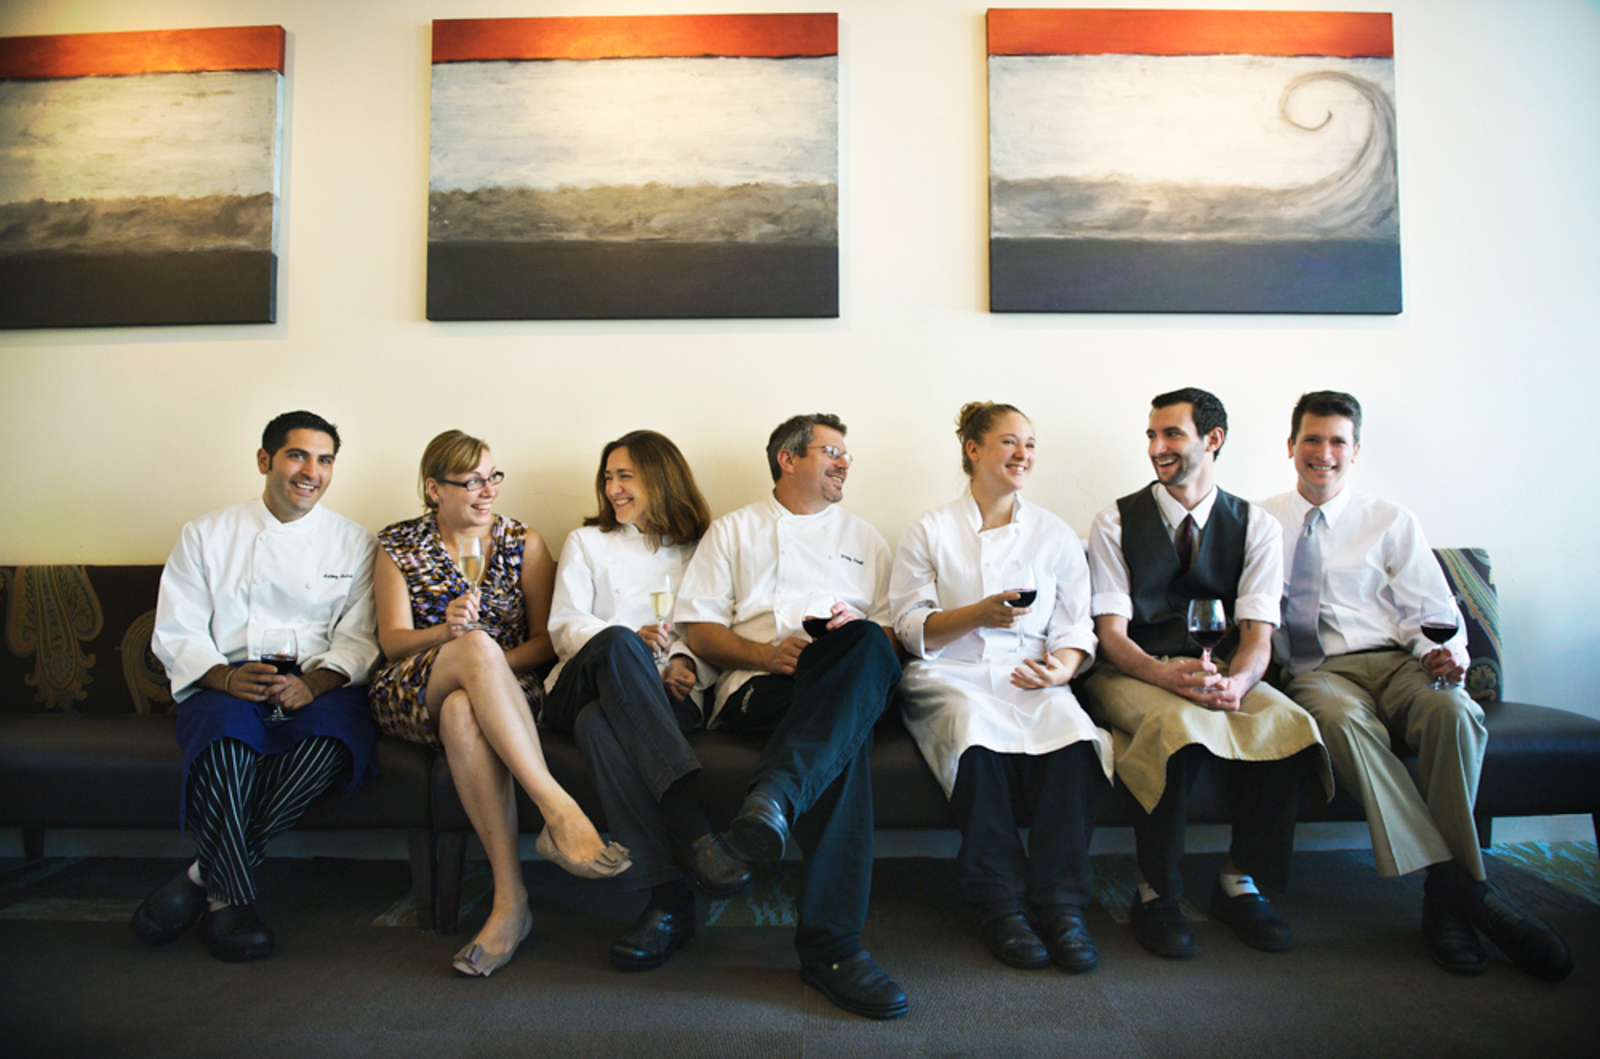 Group of chefs sitting in a couch smiling, with artwork